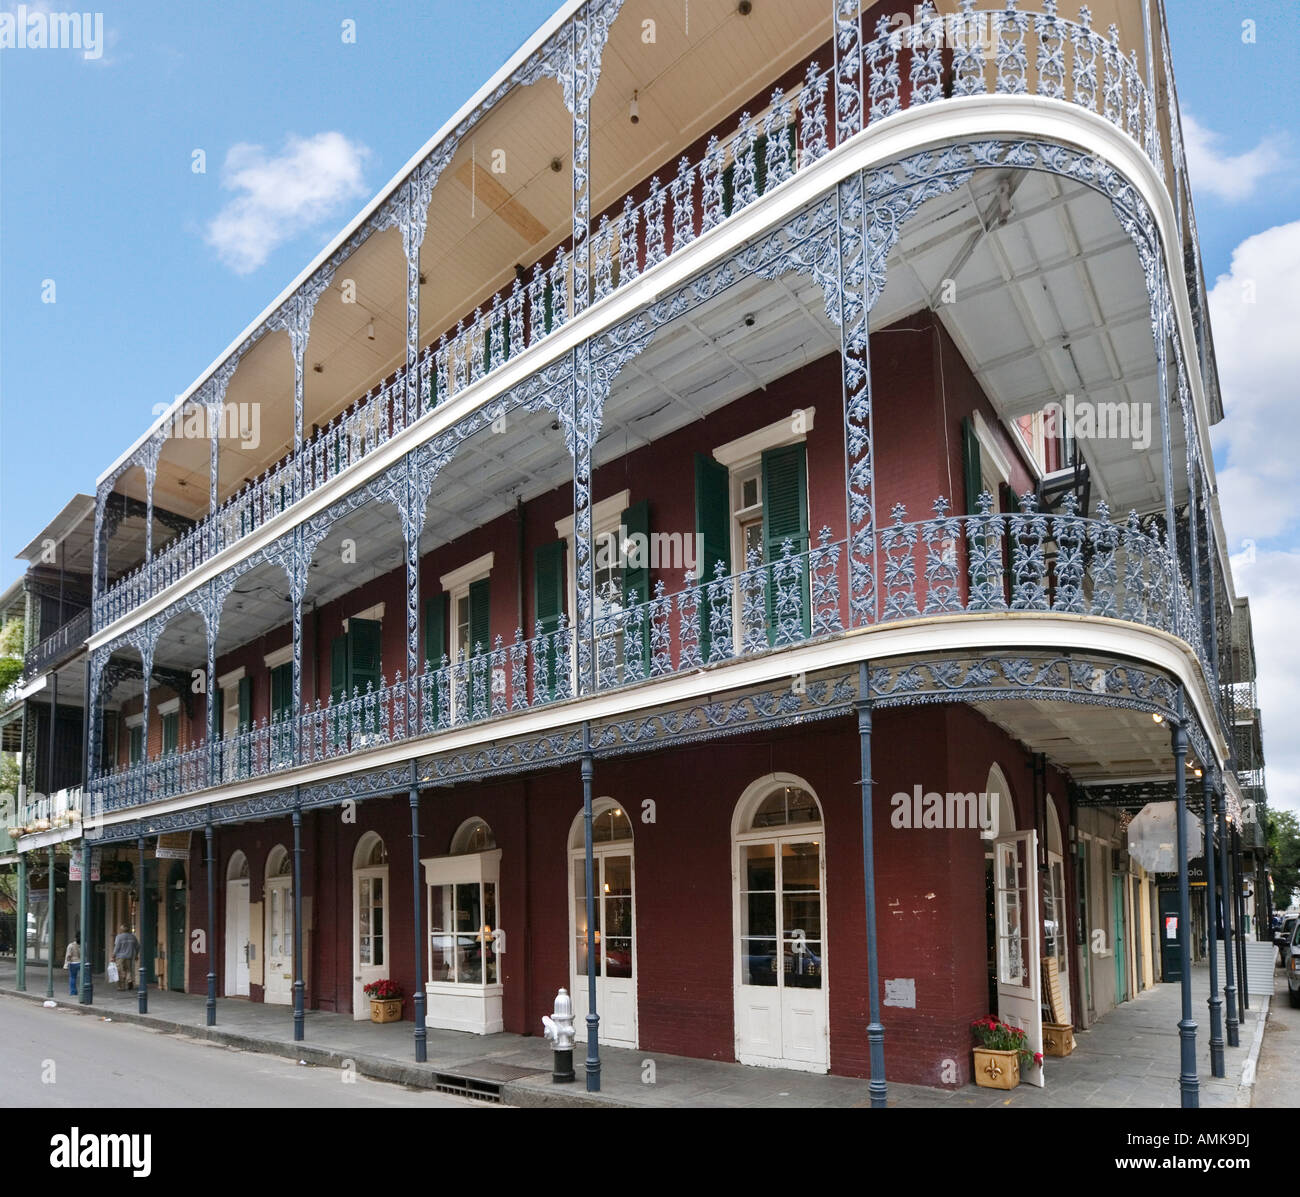 Typical wrought iron balconies french quarter new for French quarter balcony